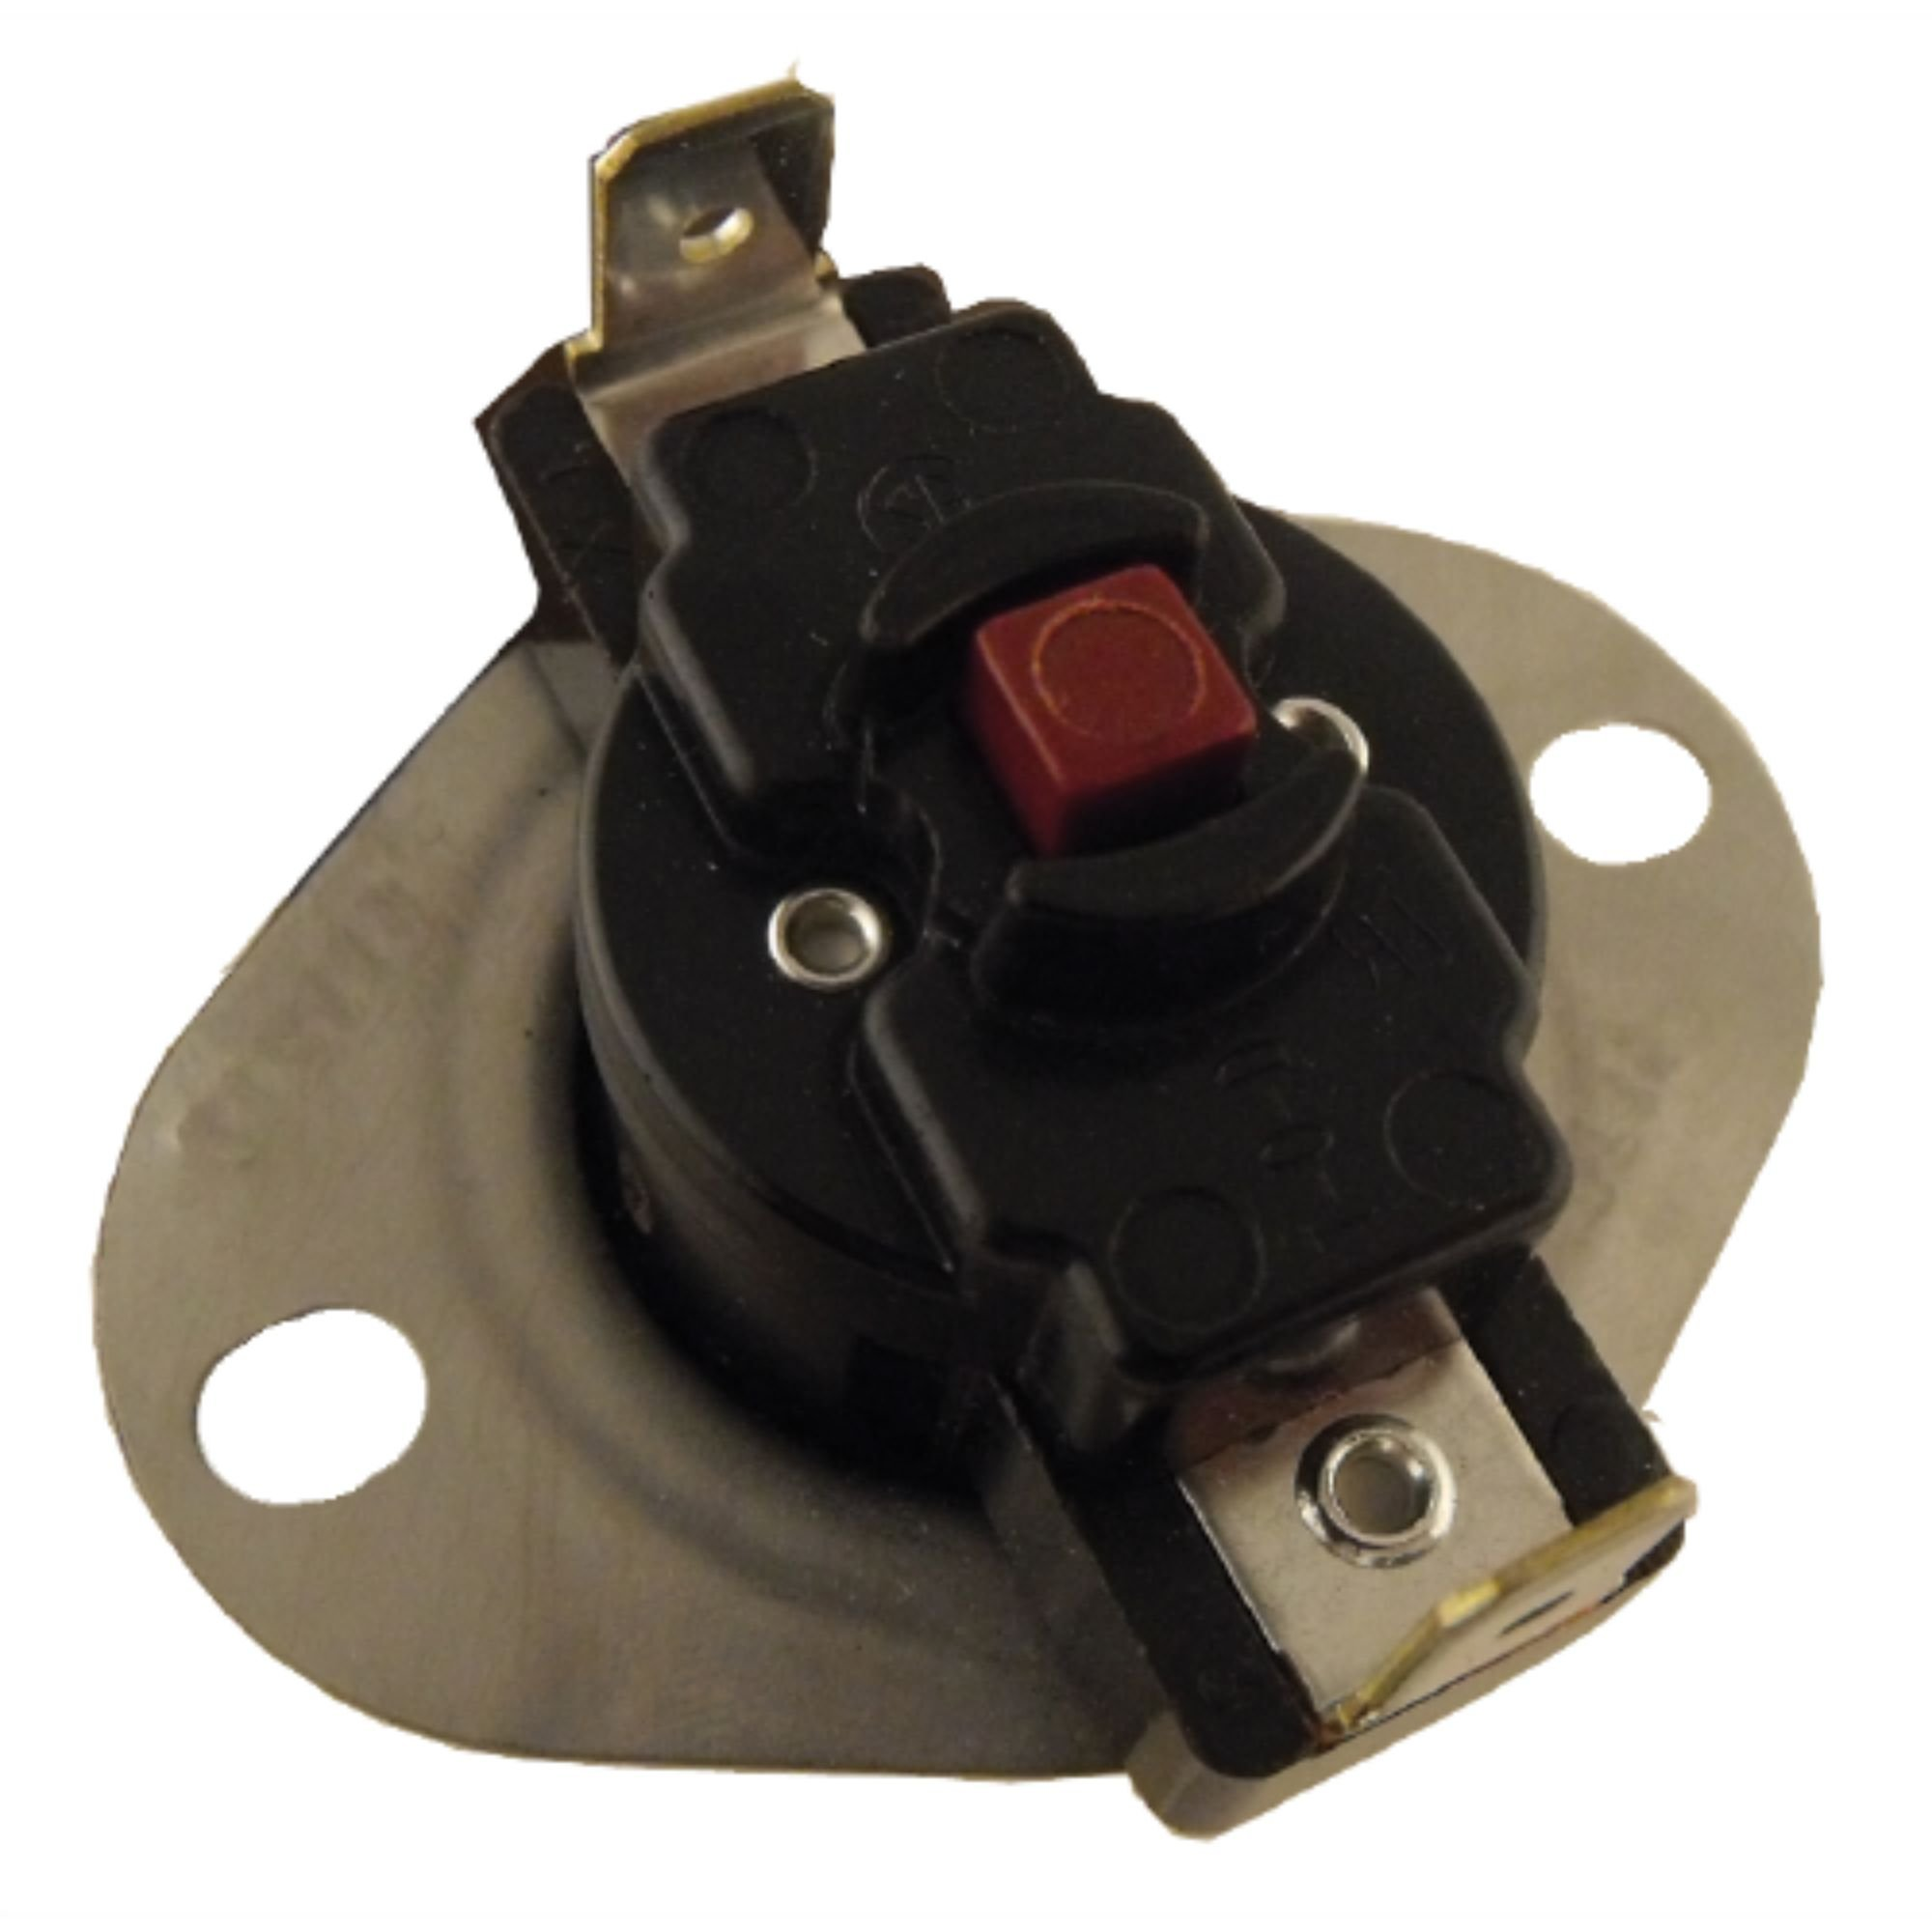 Supco Thermostat, Adjustable Limit, 120/240V - SHM180